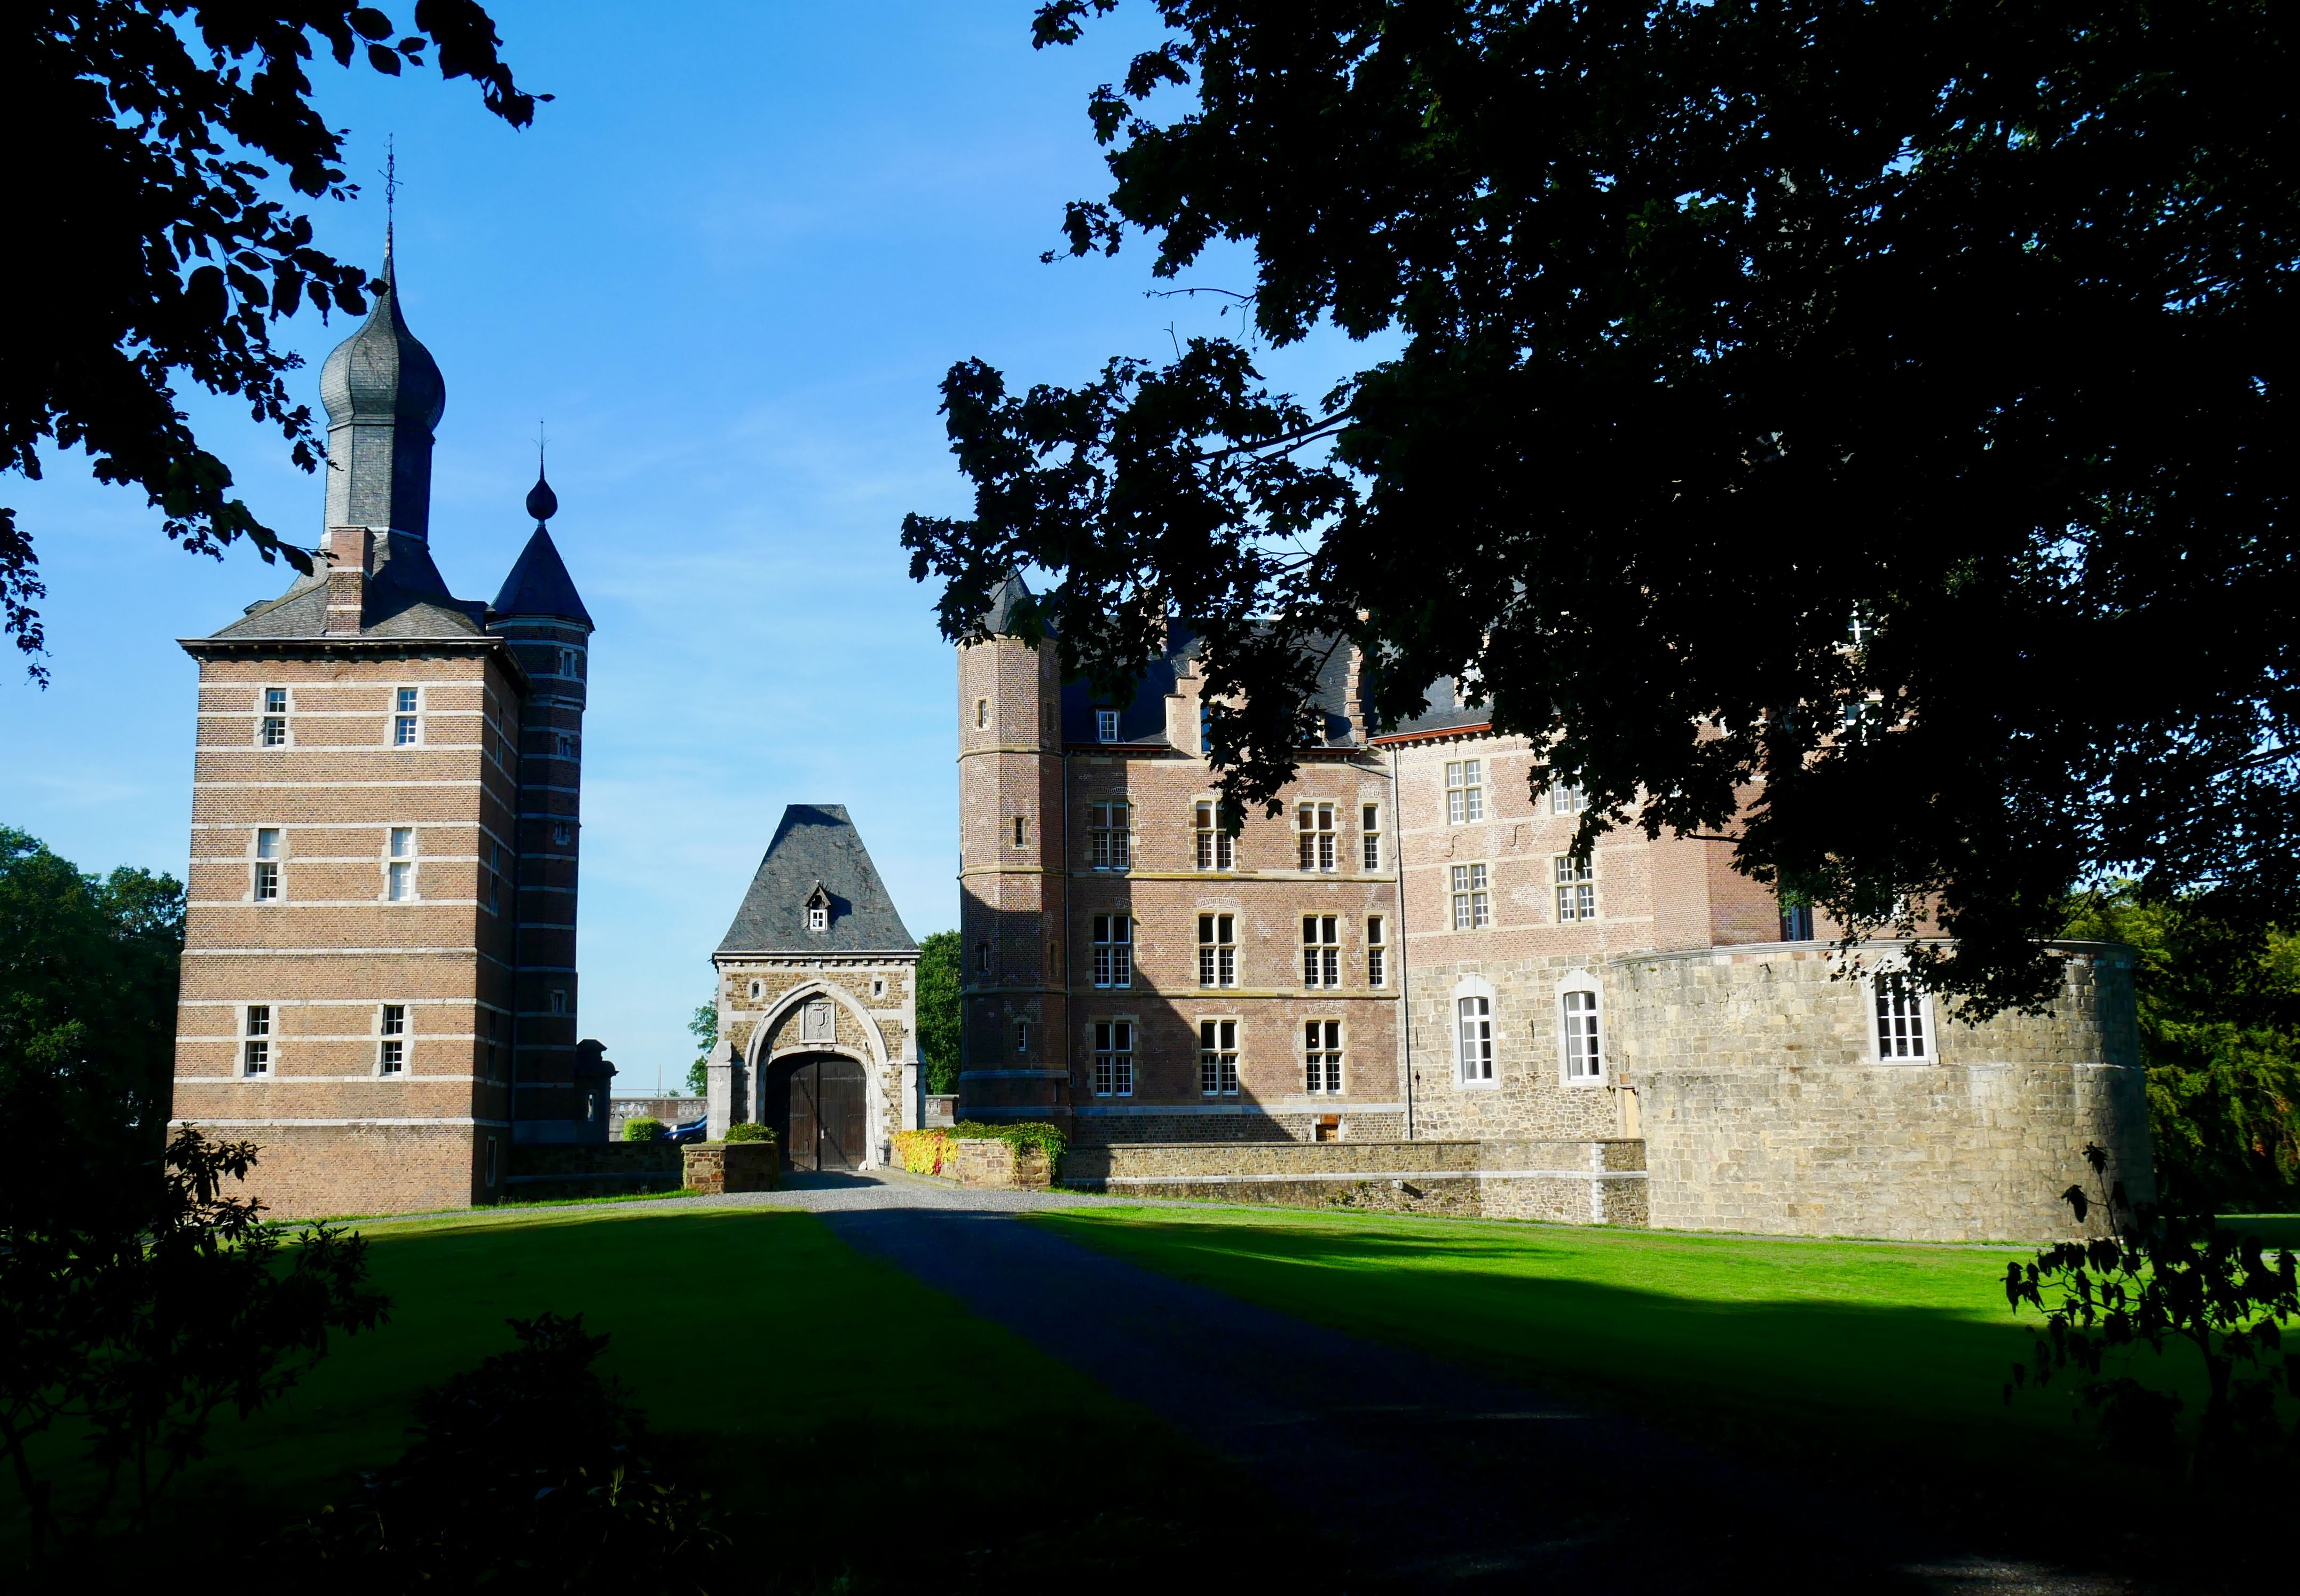 Groundview of castle merode